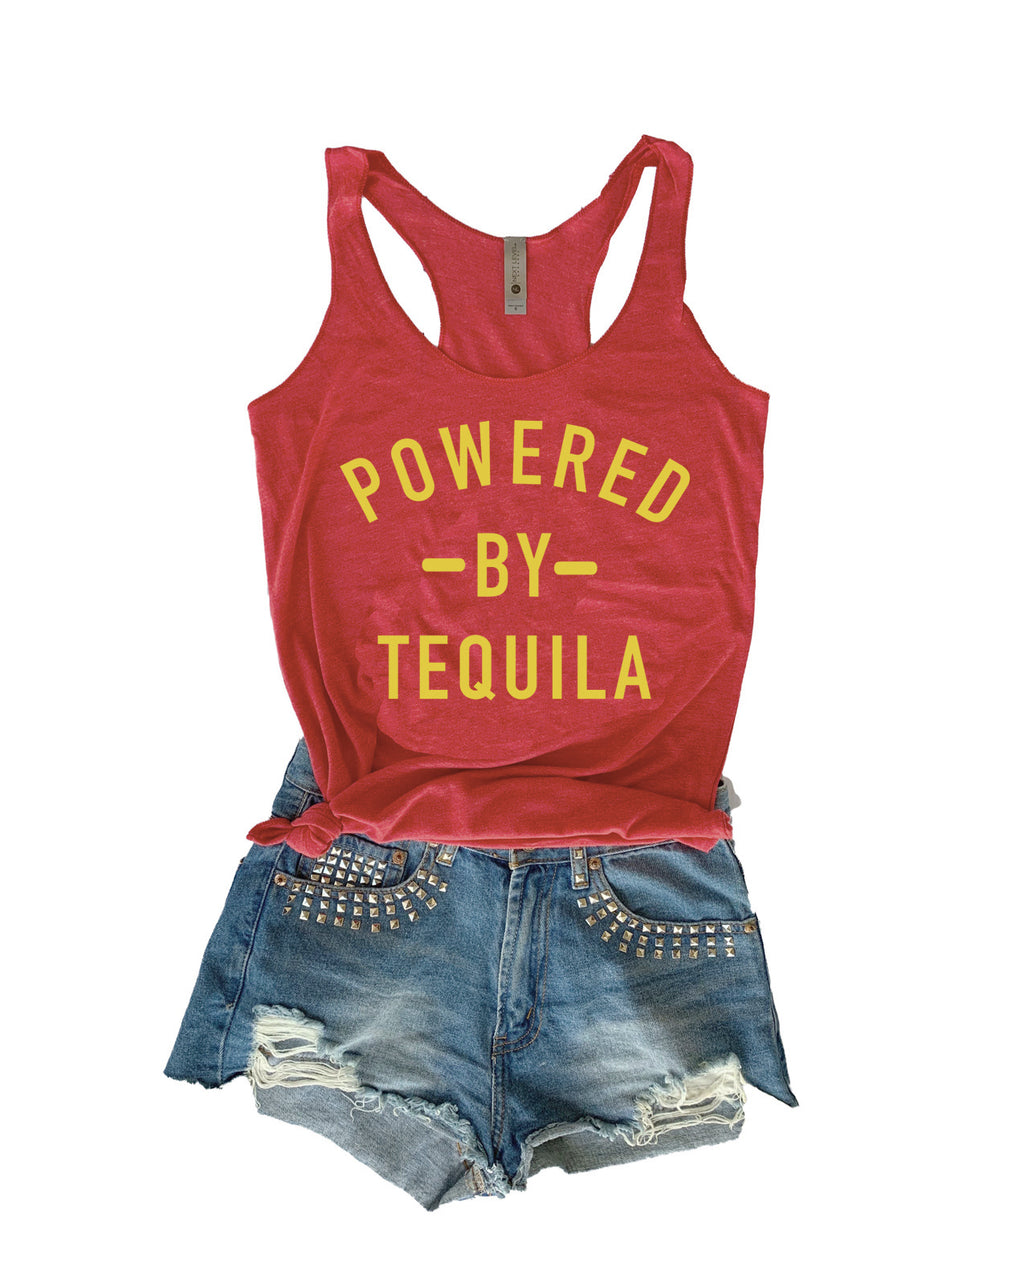 POWERED BY TEQUILA TANK TOP